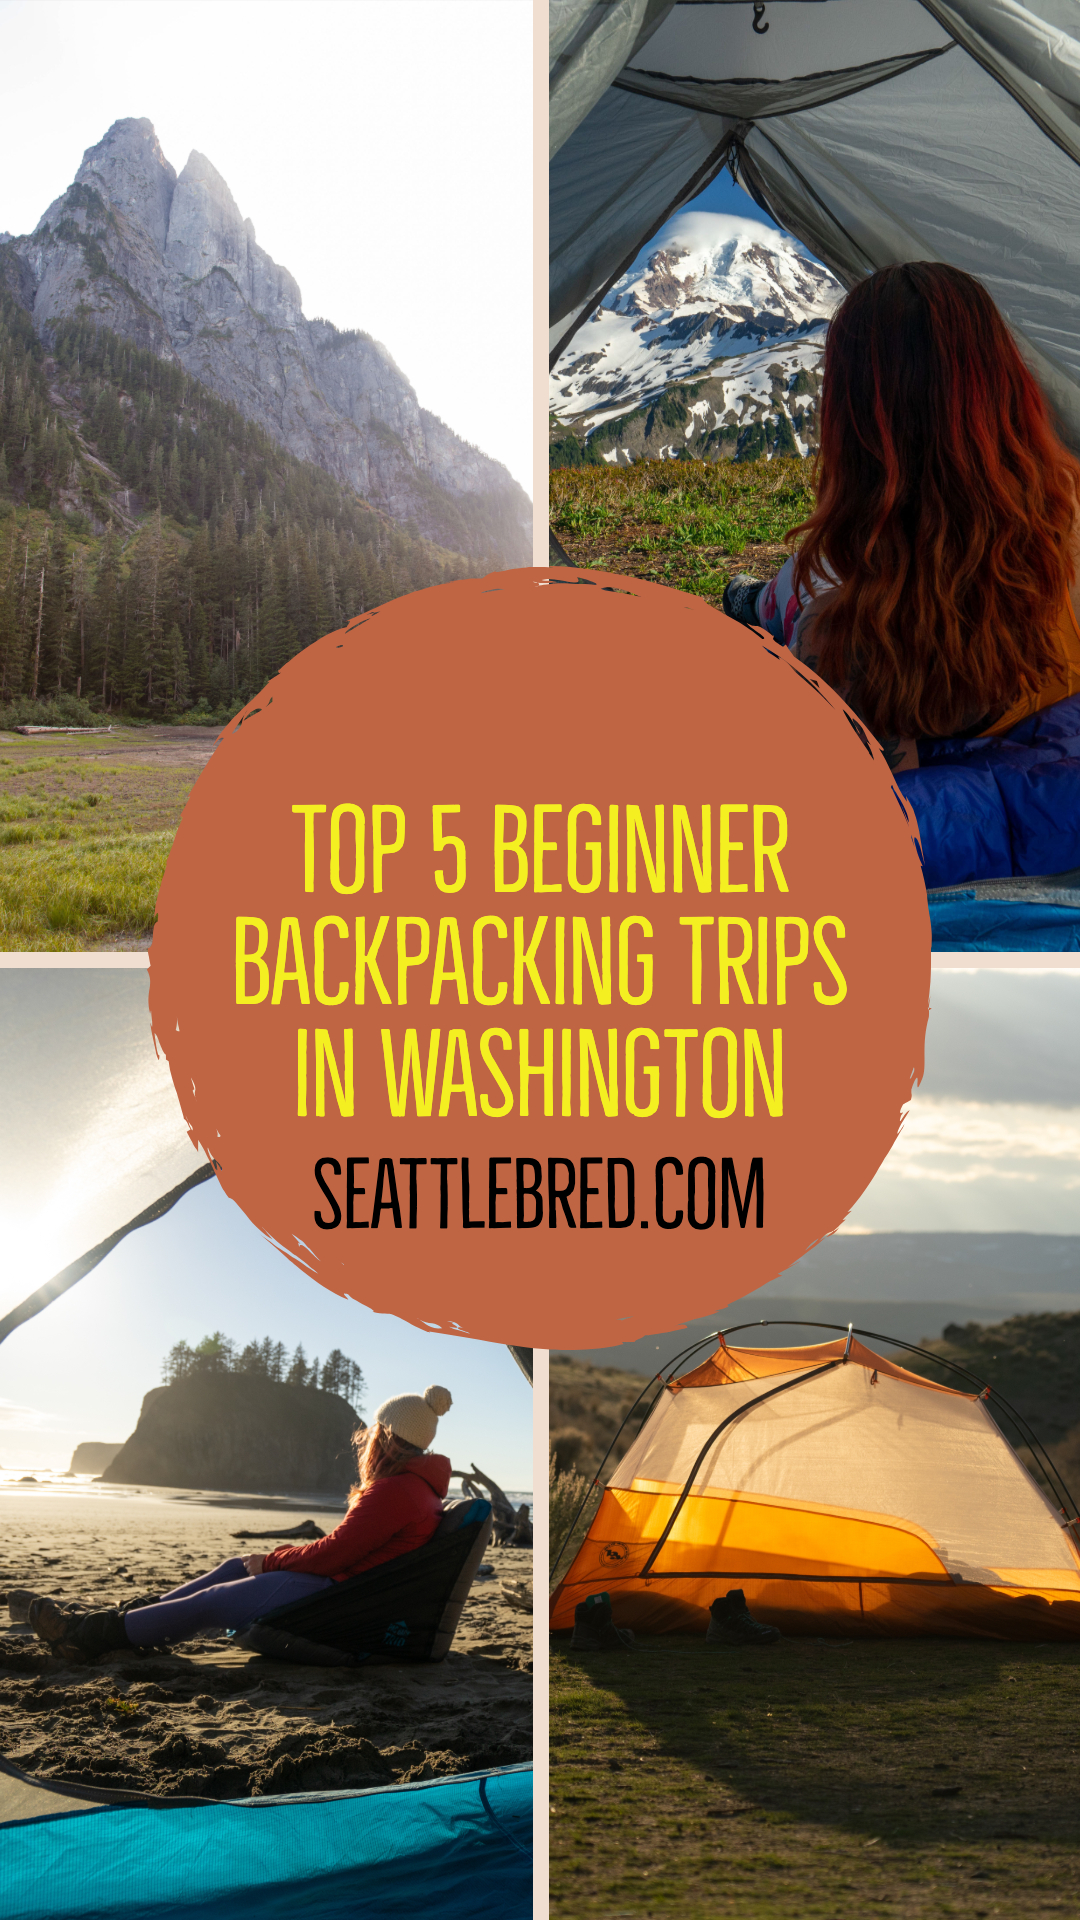 Best-Beginner-Backpacking-Trips (1).jpg